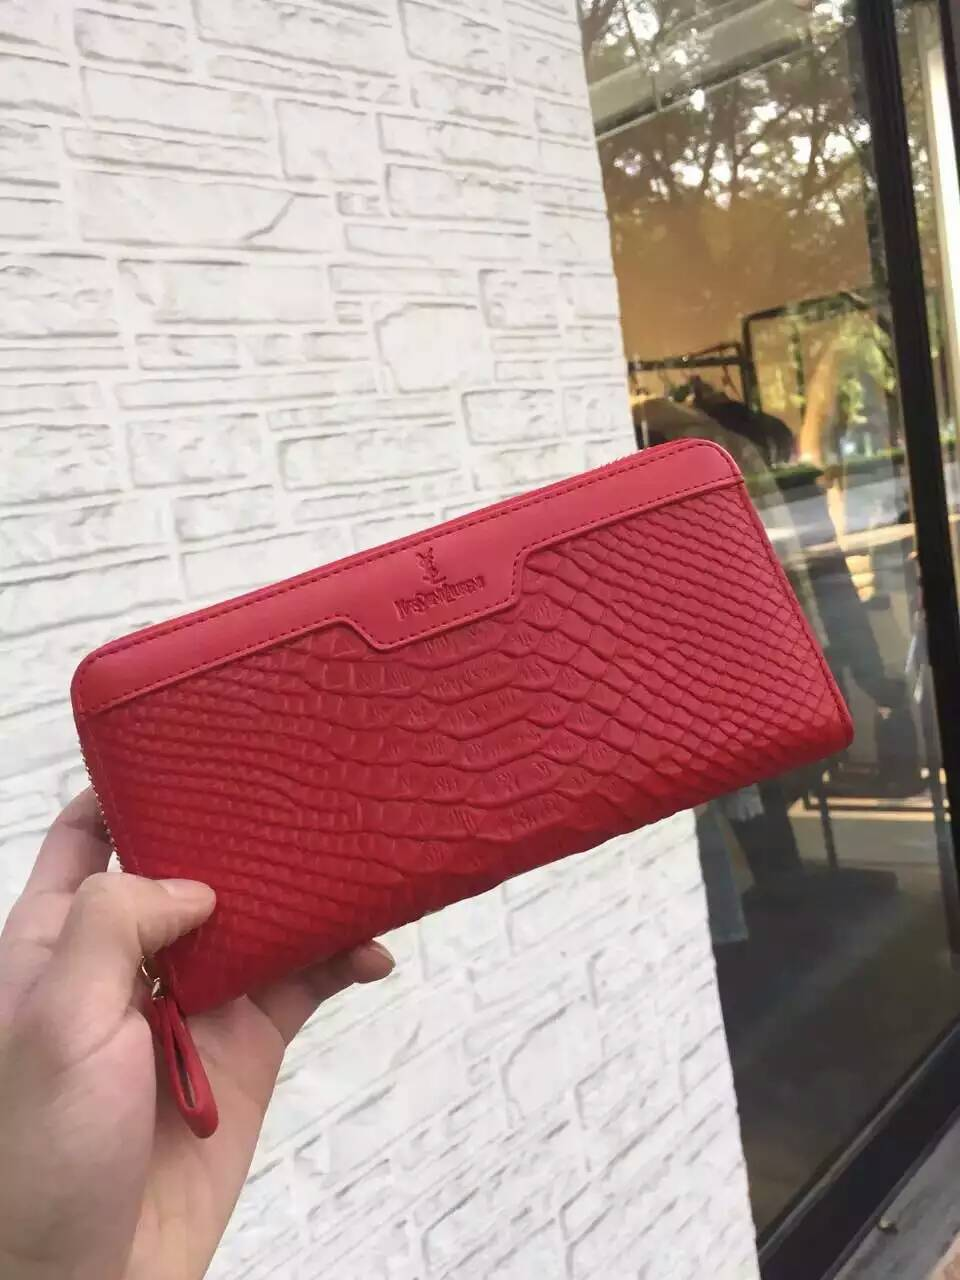 2016 Saint Laurent Bags Cheap Sale-Saint Laurent Zippy Around Wallet in Red Python Embossed Calfskin Leather